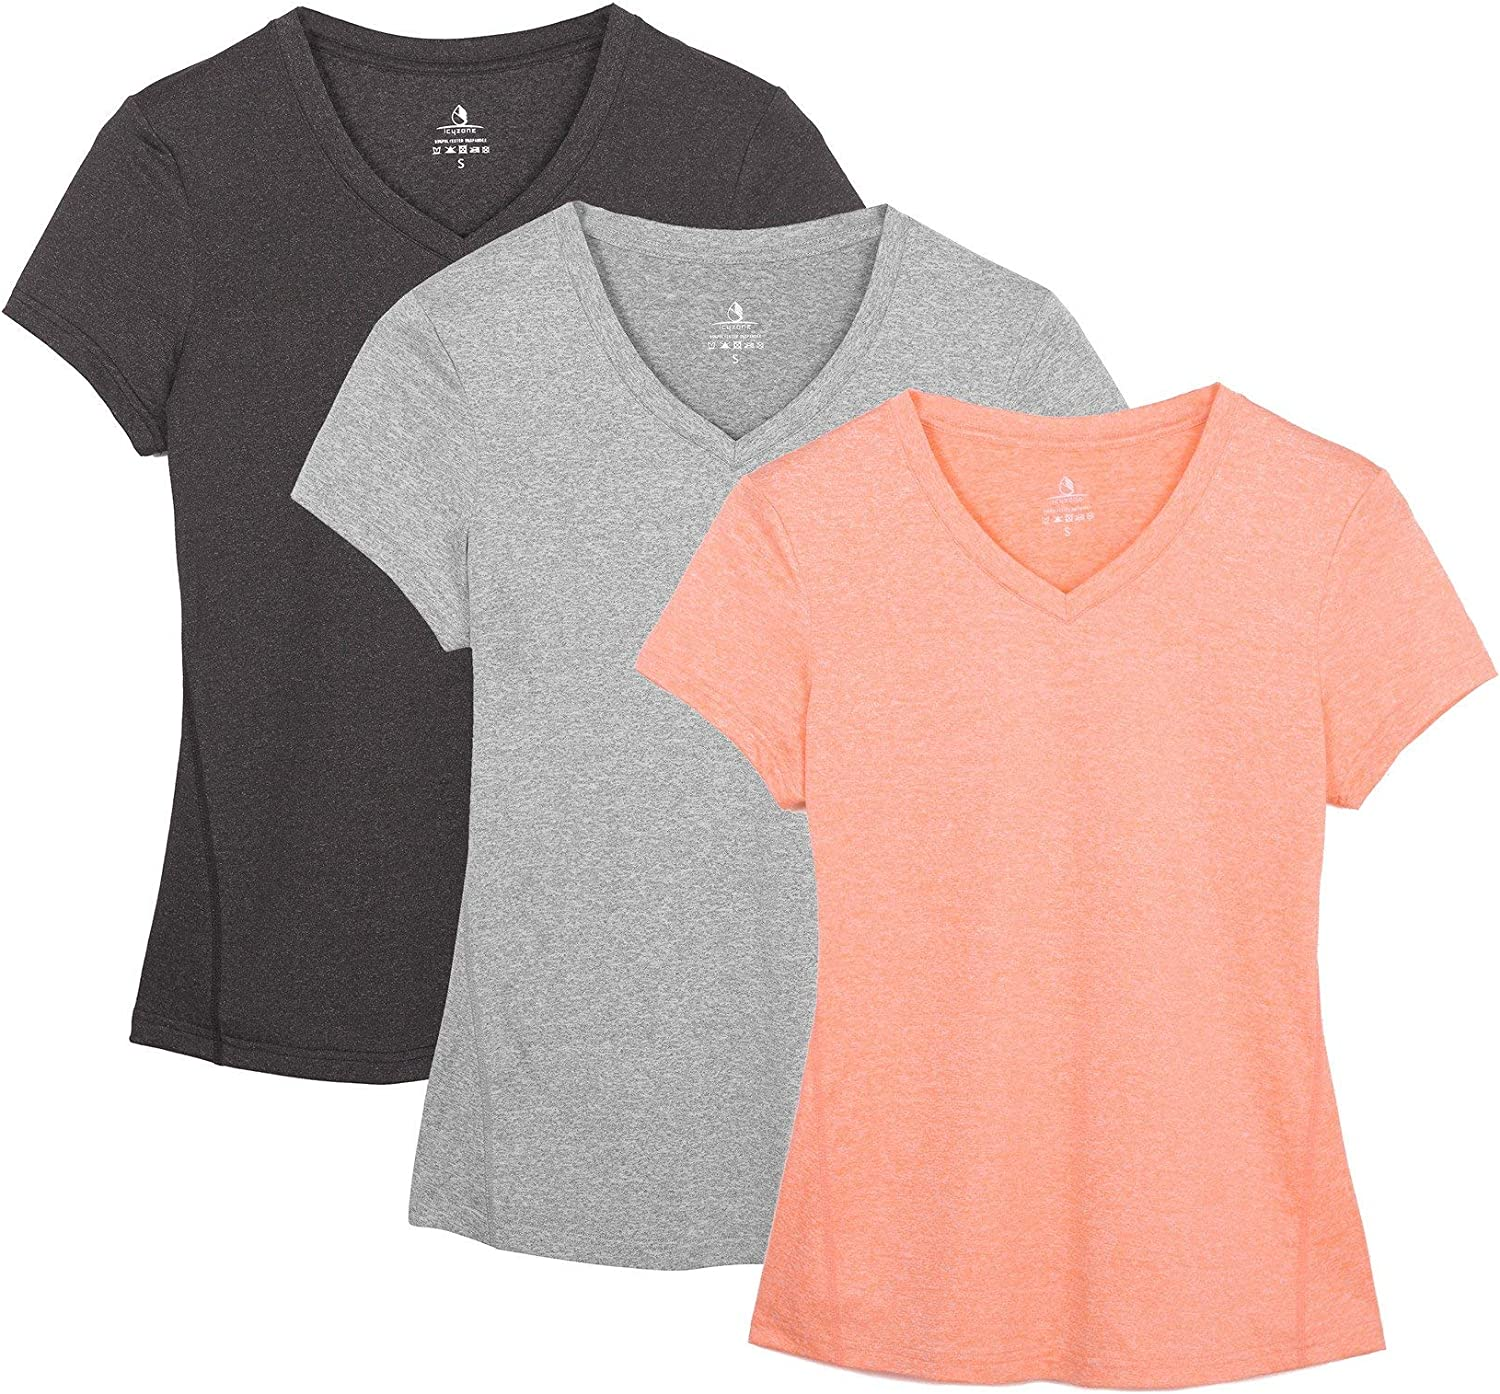 icyzone Workout Shirts Yoga Tops Activewear V-Neck T-Shirts for Women Running Fitness Sports Short Sleeve Tees(Pack of 3)